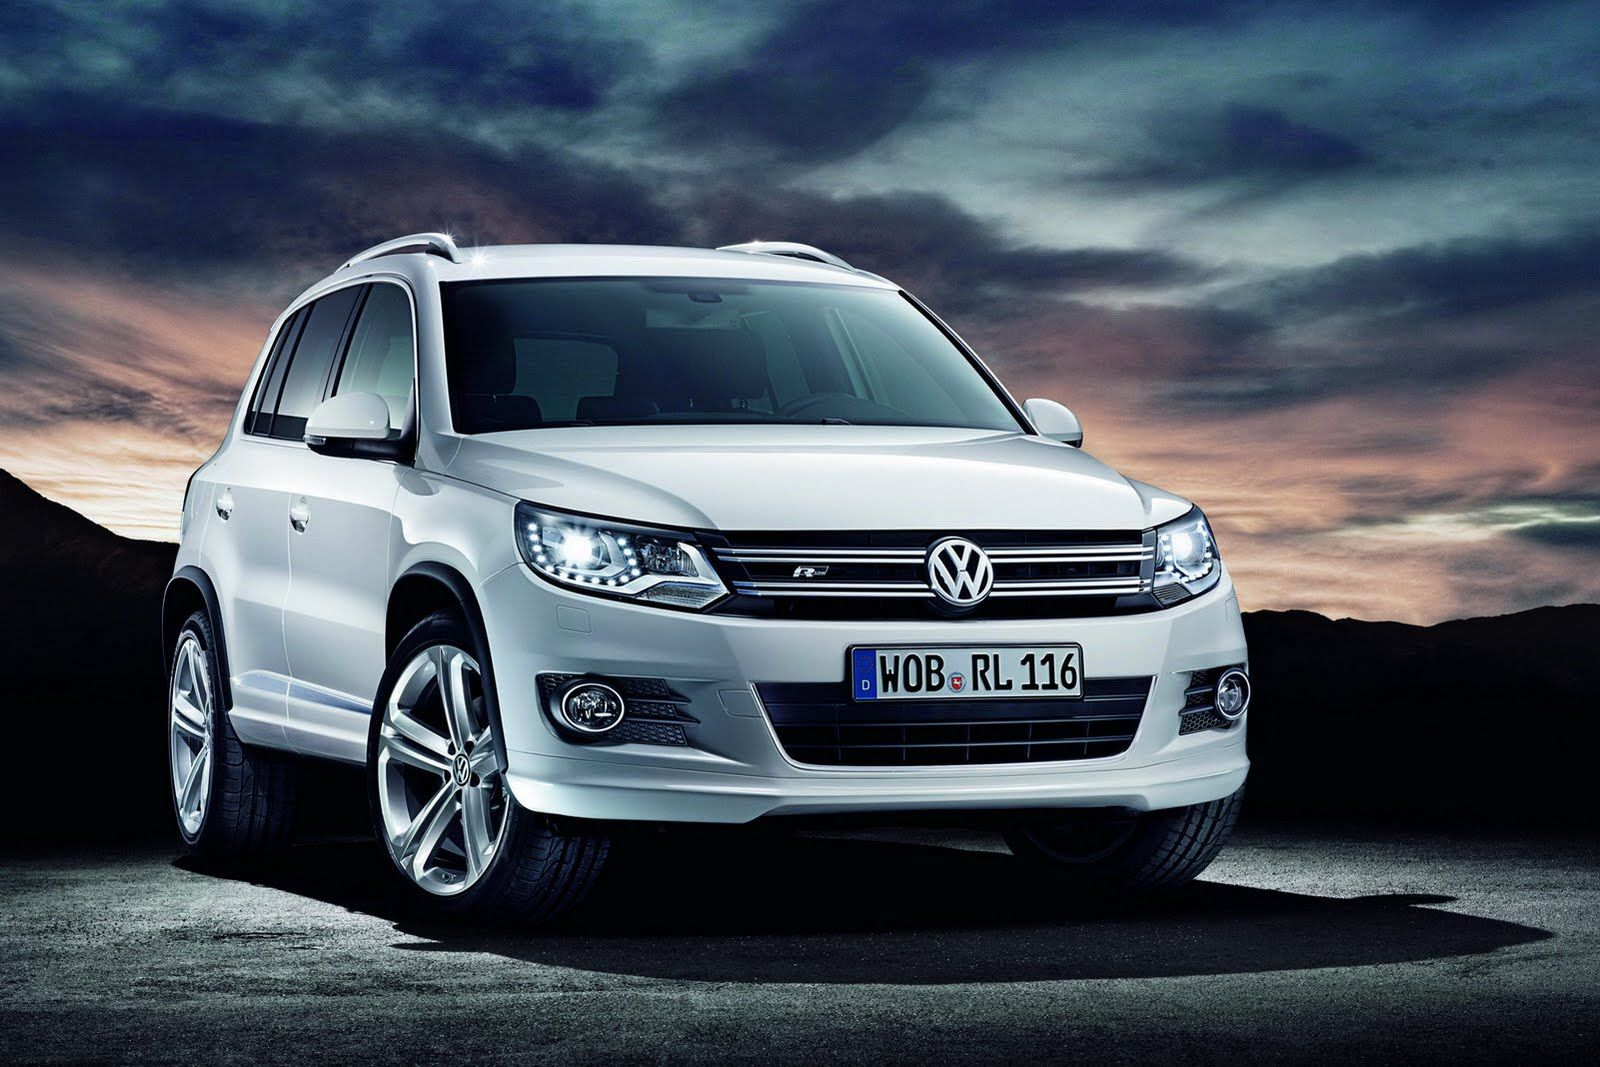 Haven't been super impressed with the VW Tiguan, but this